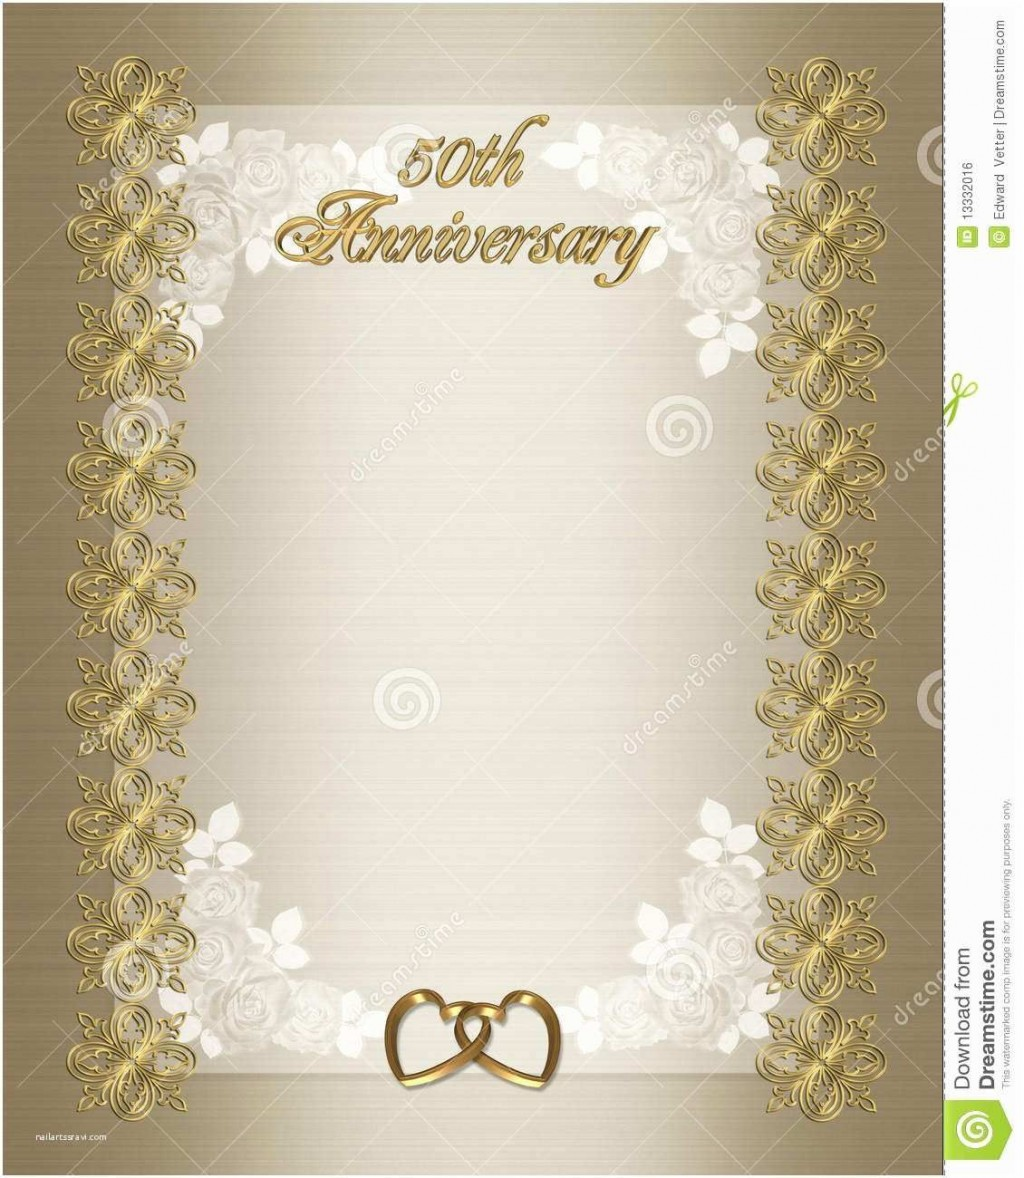 005 Remarkable 50th Anniversary Invitation Template Sample  Templates Wedding Free Download GoldenLarge